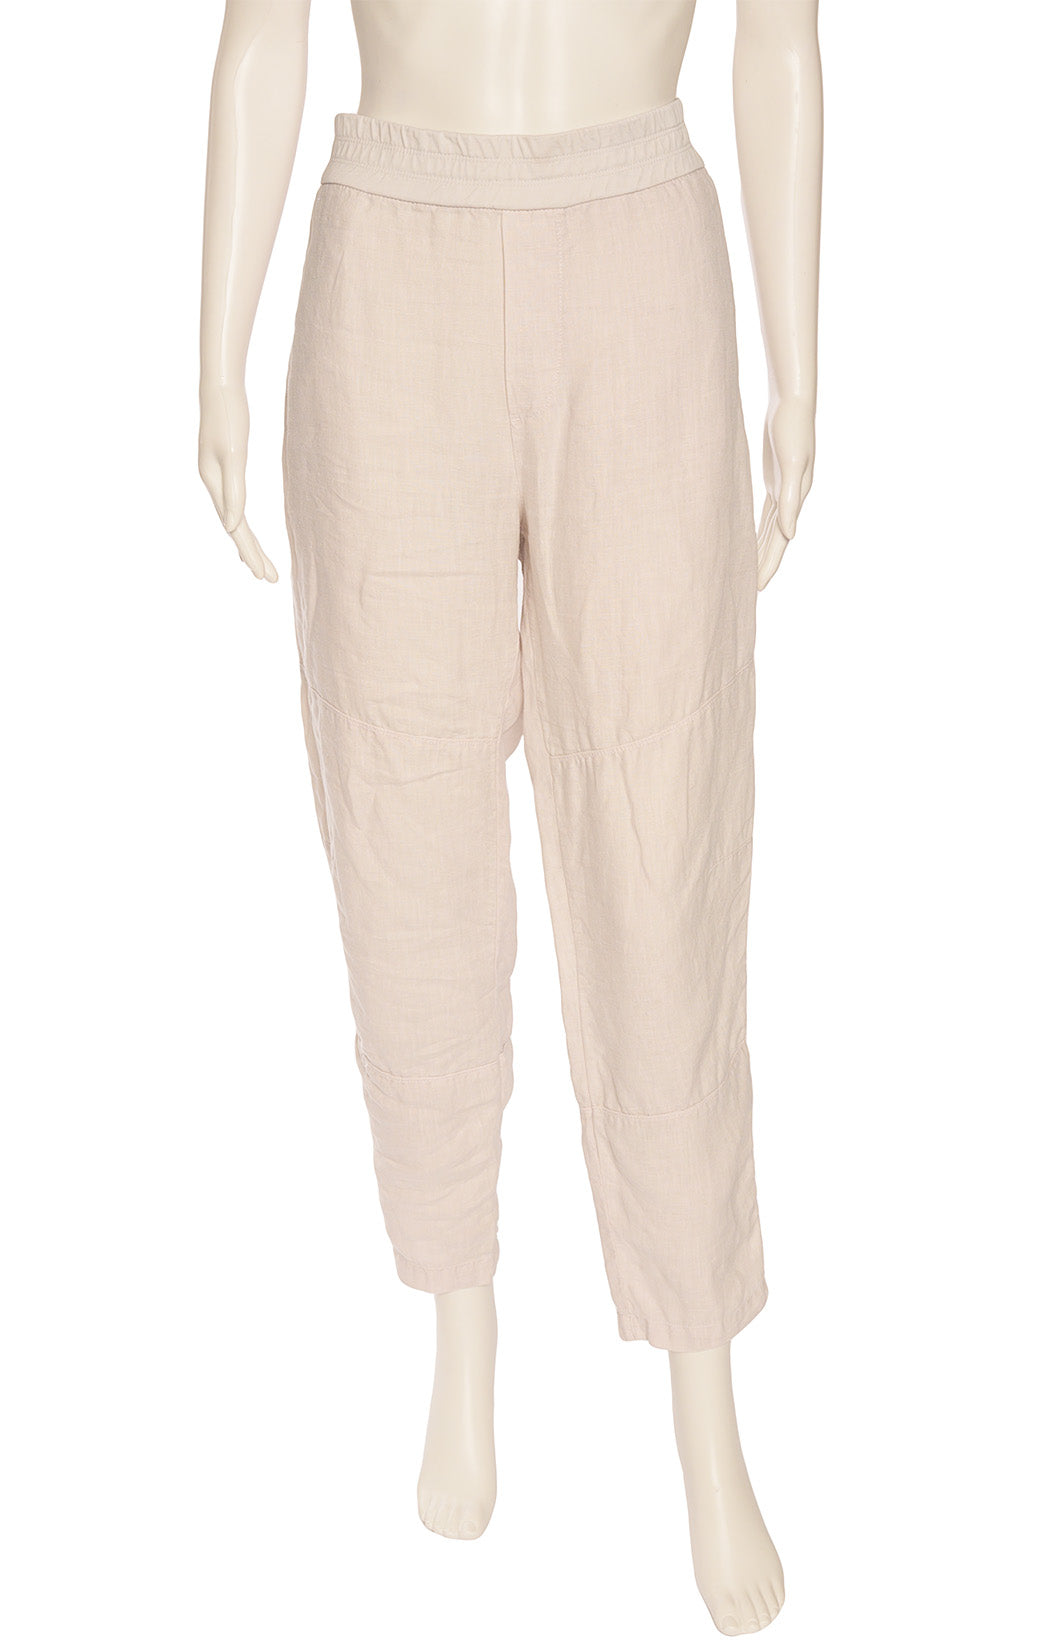 Front view of JAMES PERSE Pants Size: Large